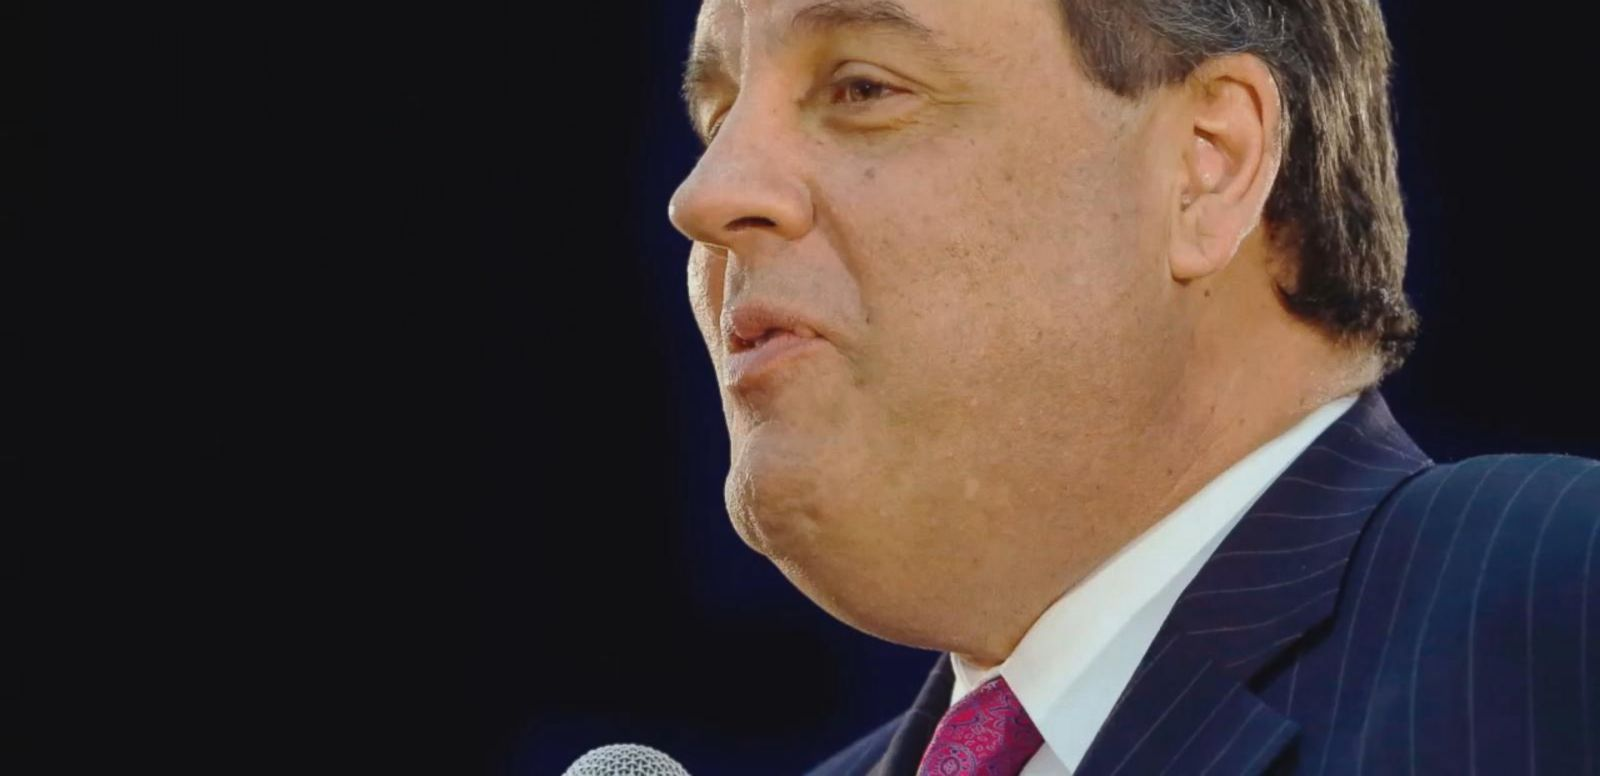 VIDEO: Chris Christie In A Minute